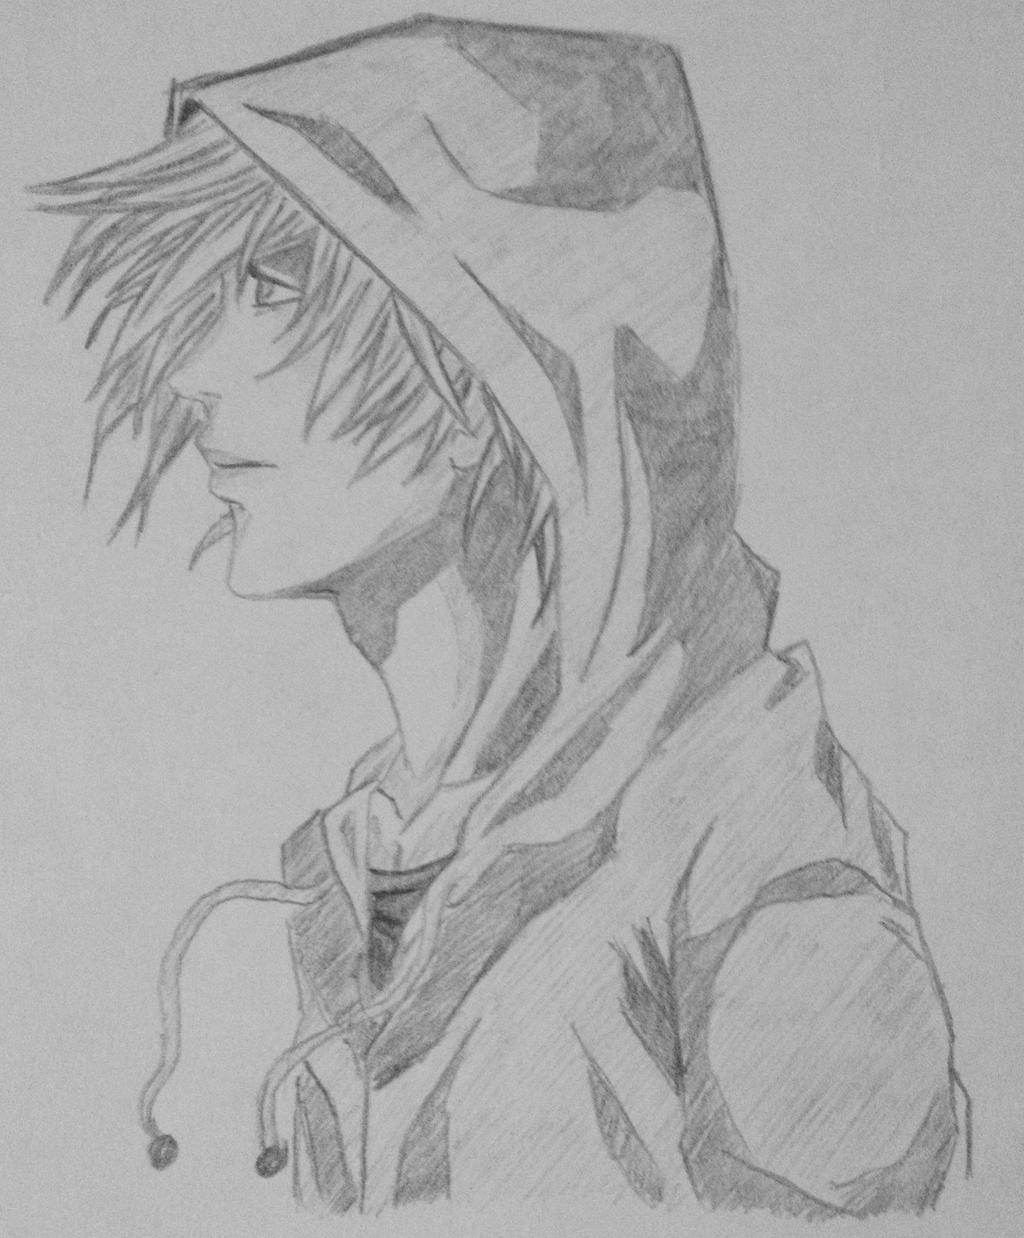 Pokelantislv9999 Side View Hooded Guy Anime By